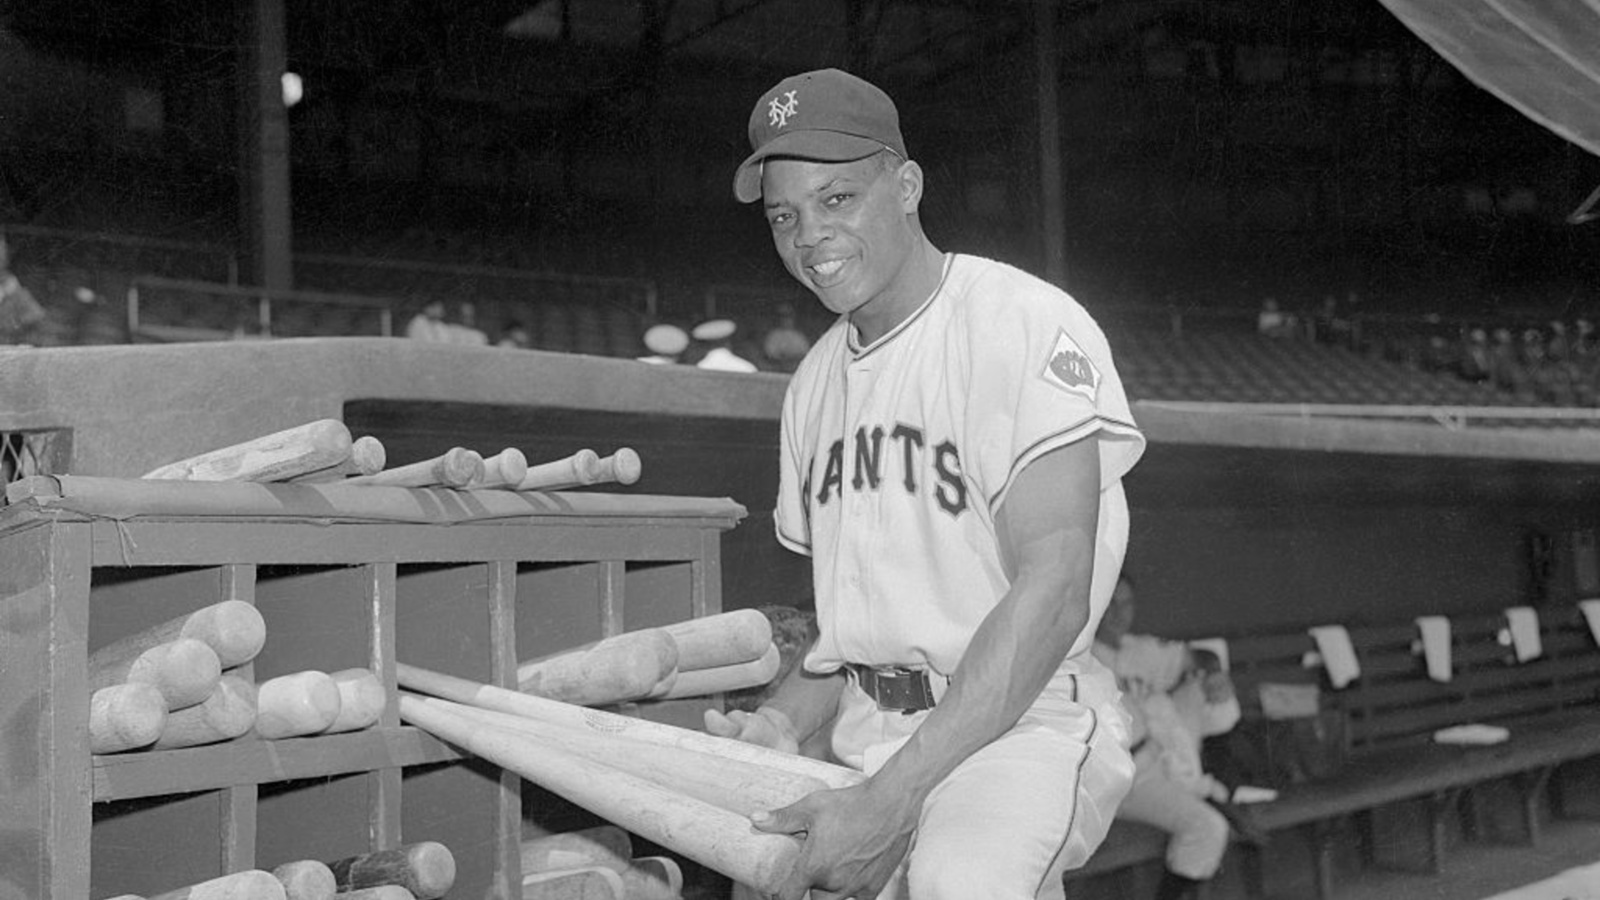 June 29 in sports history: A great day for no-hitters